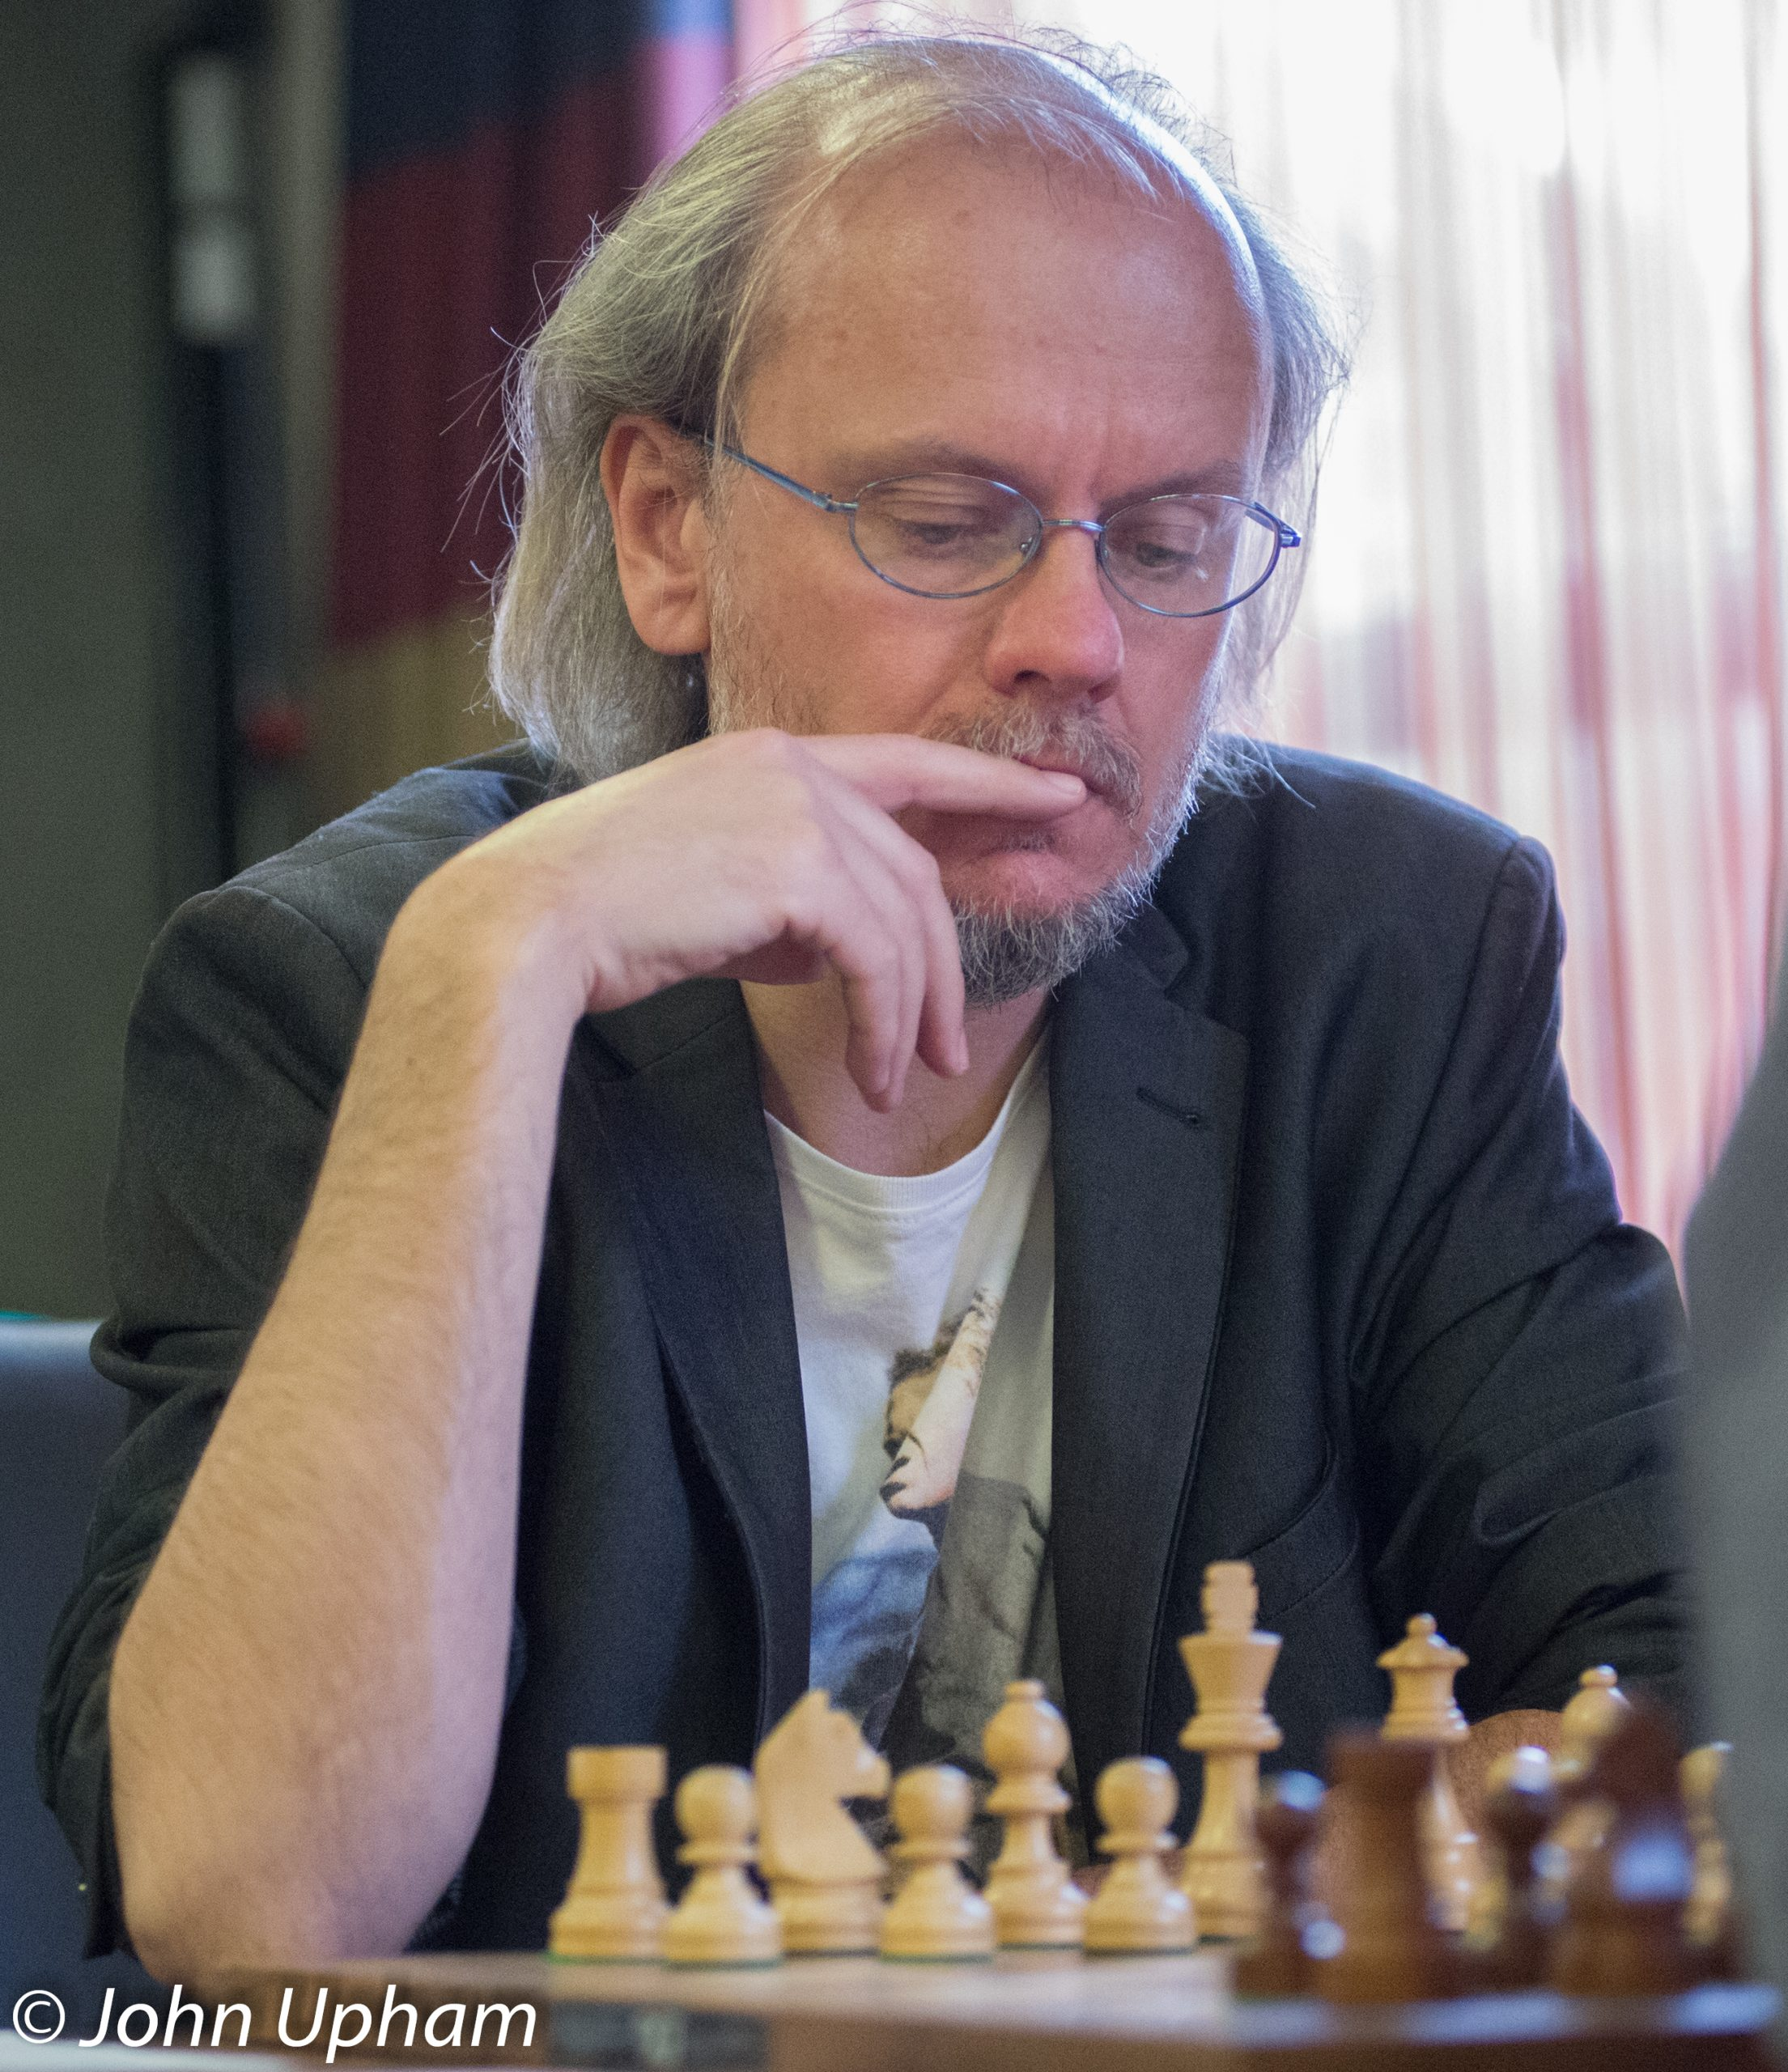 GM Stuart Conquest